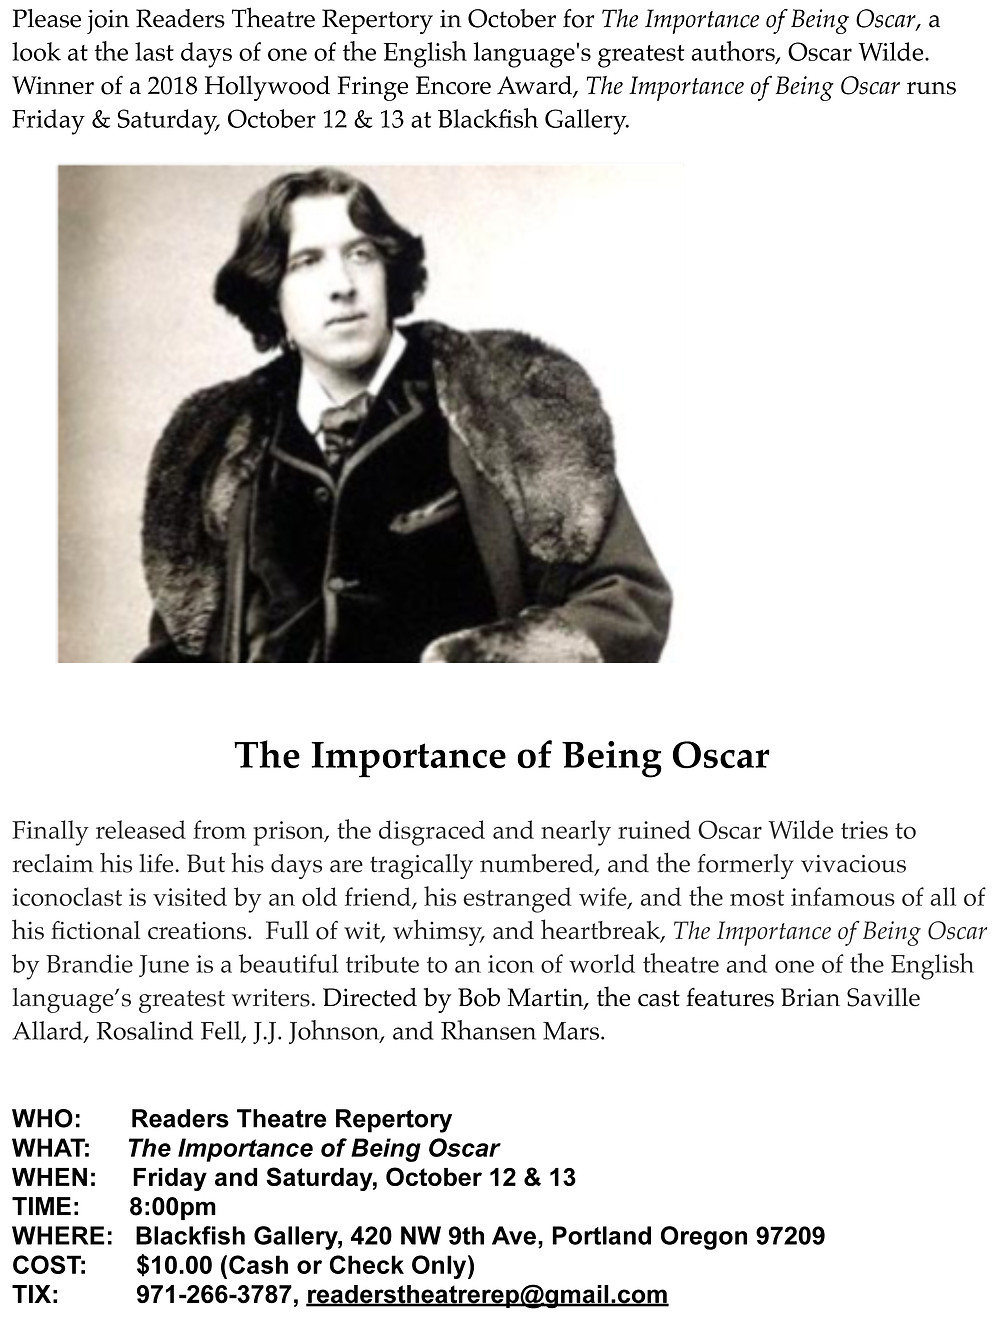 Oscar Wilde play by playwright and author Brandie June goes to Portland